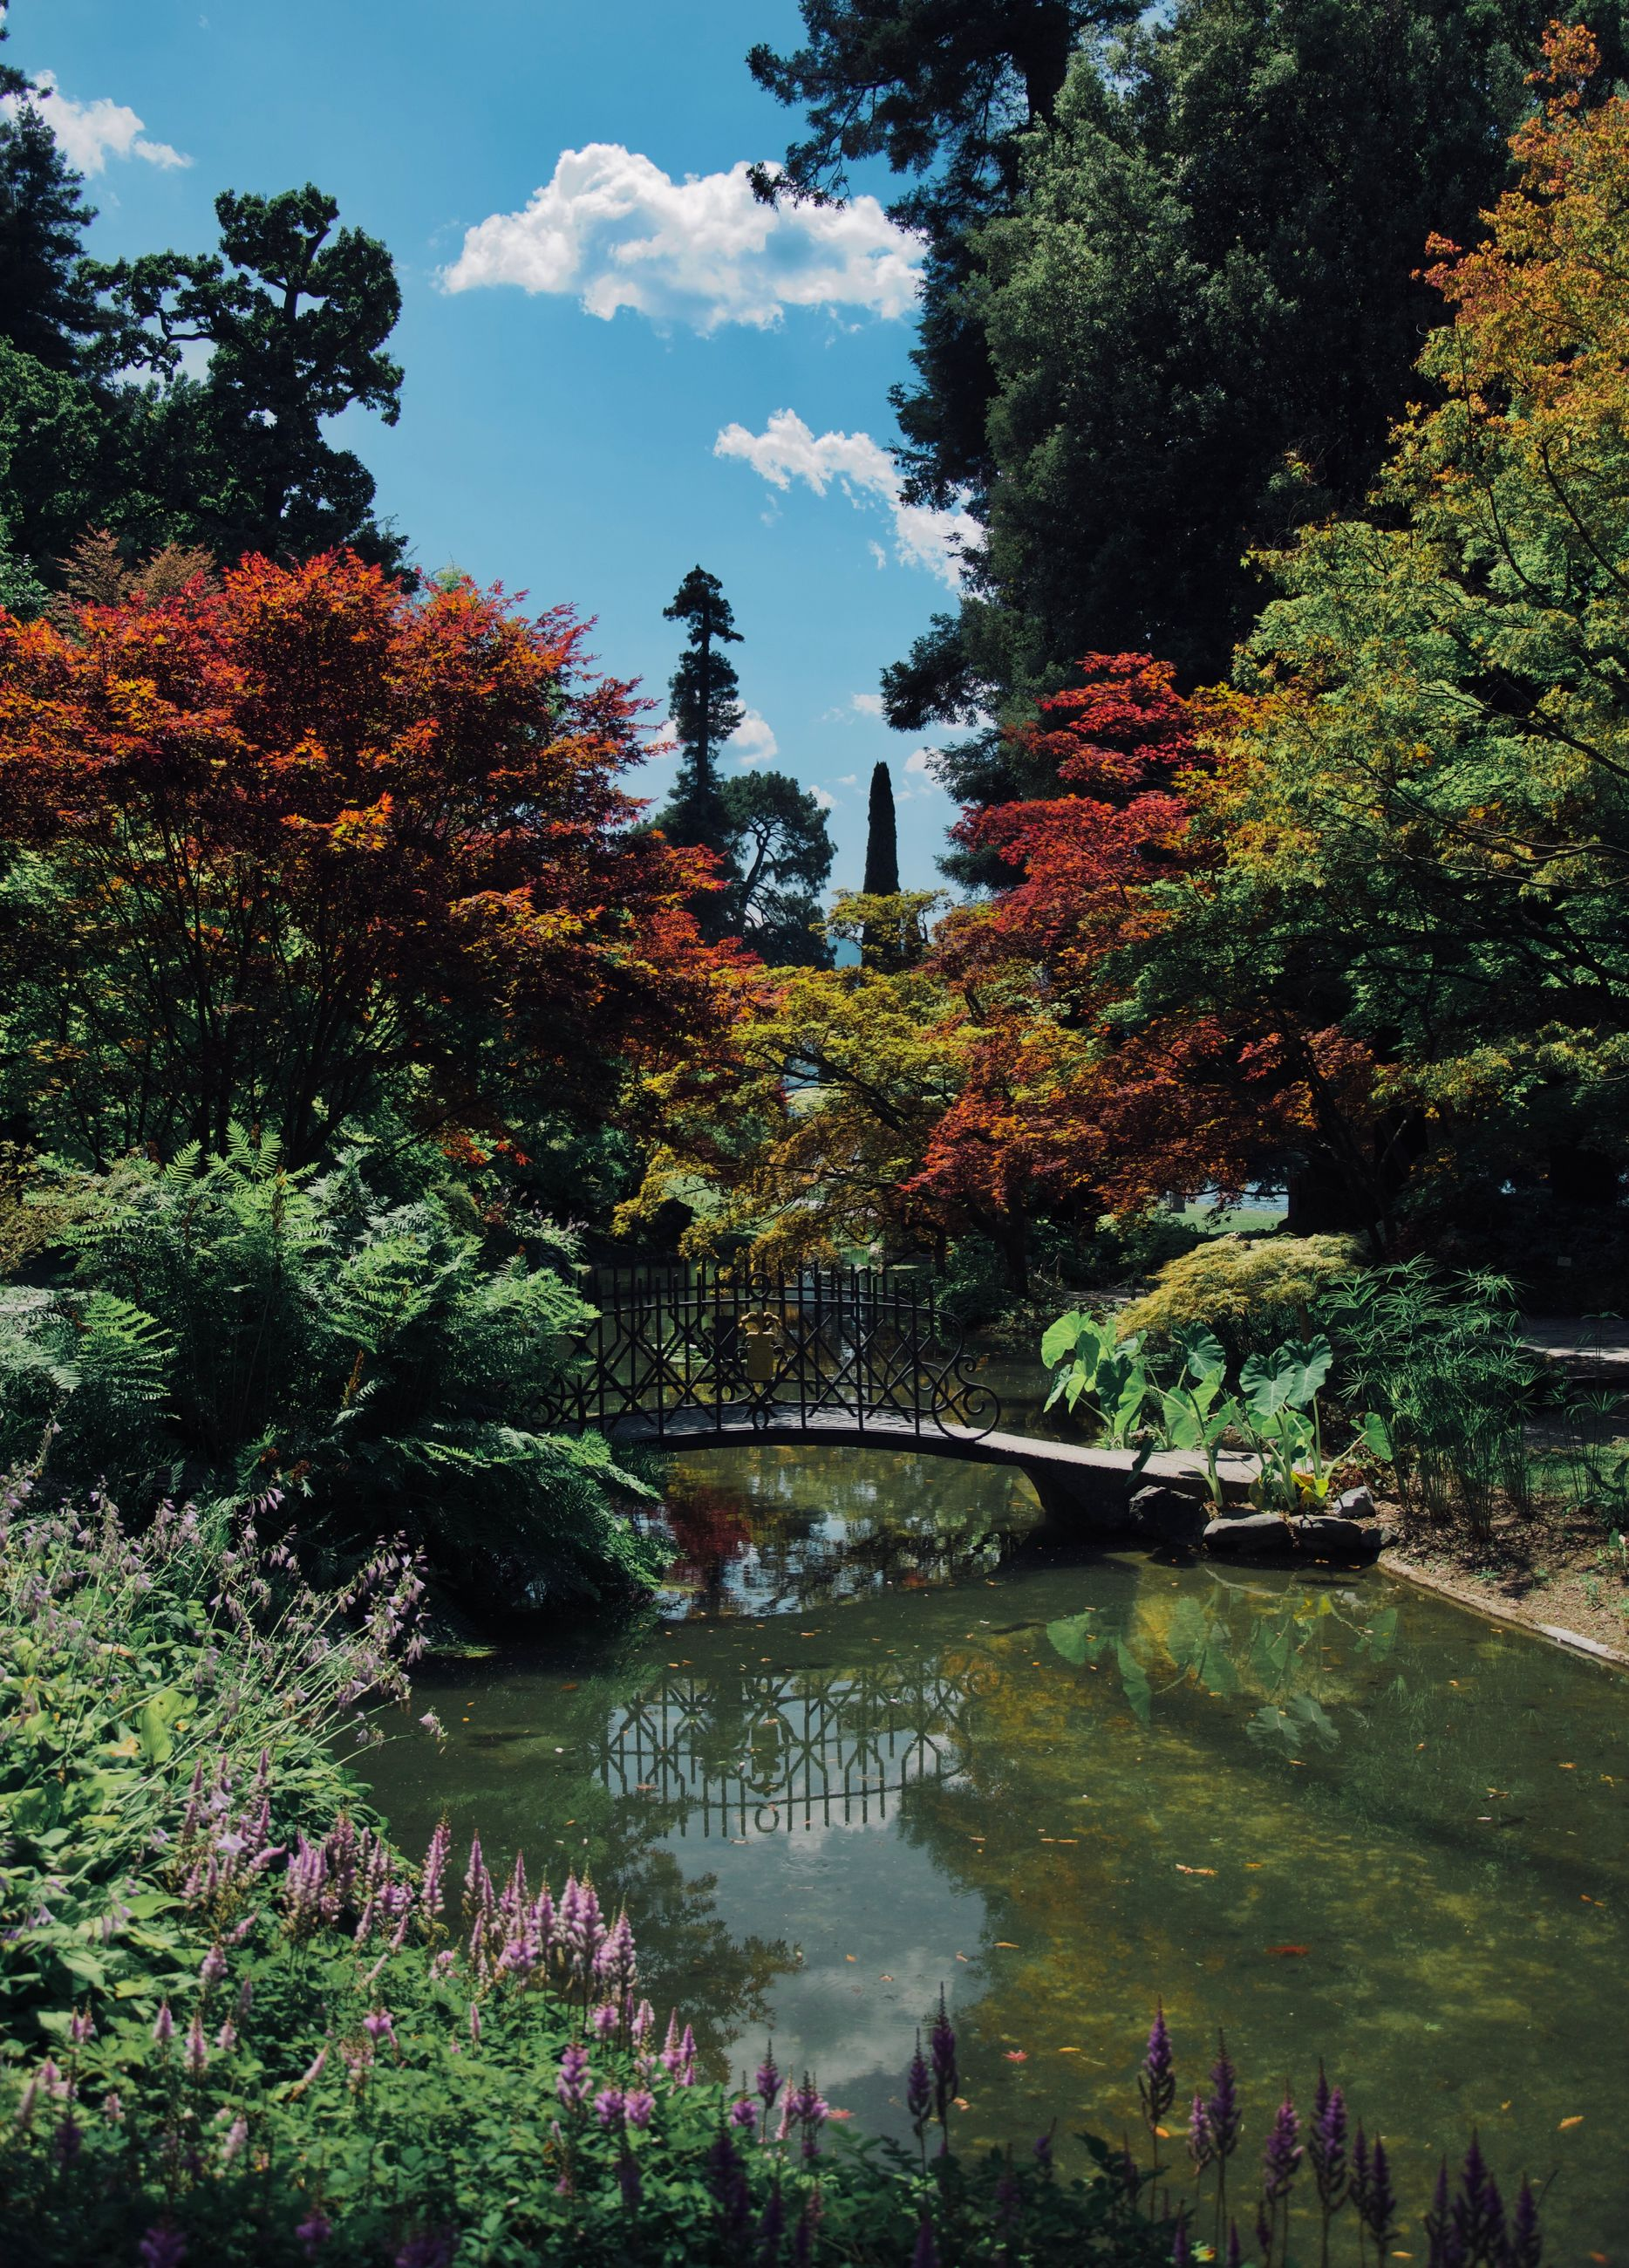 plant, tree, water, nature, lake, day, growth, reflection, group of people, bridge, architecture, built structure, beauty in nature, park, connection, bridge - man made structure, park - man made space, formal garden, outdoors, change